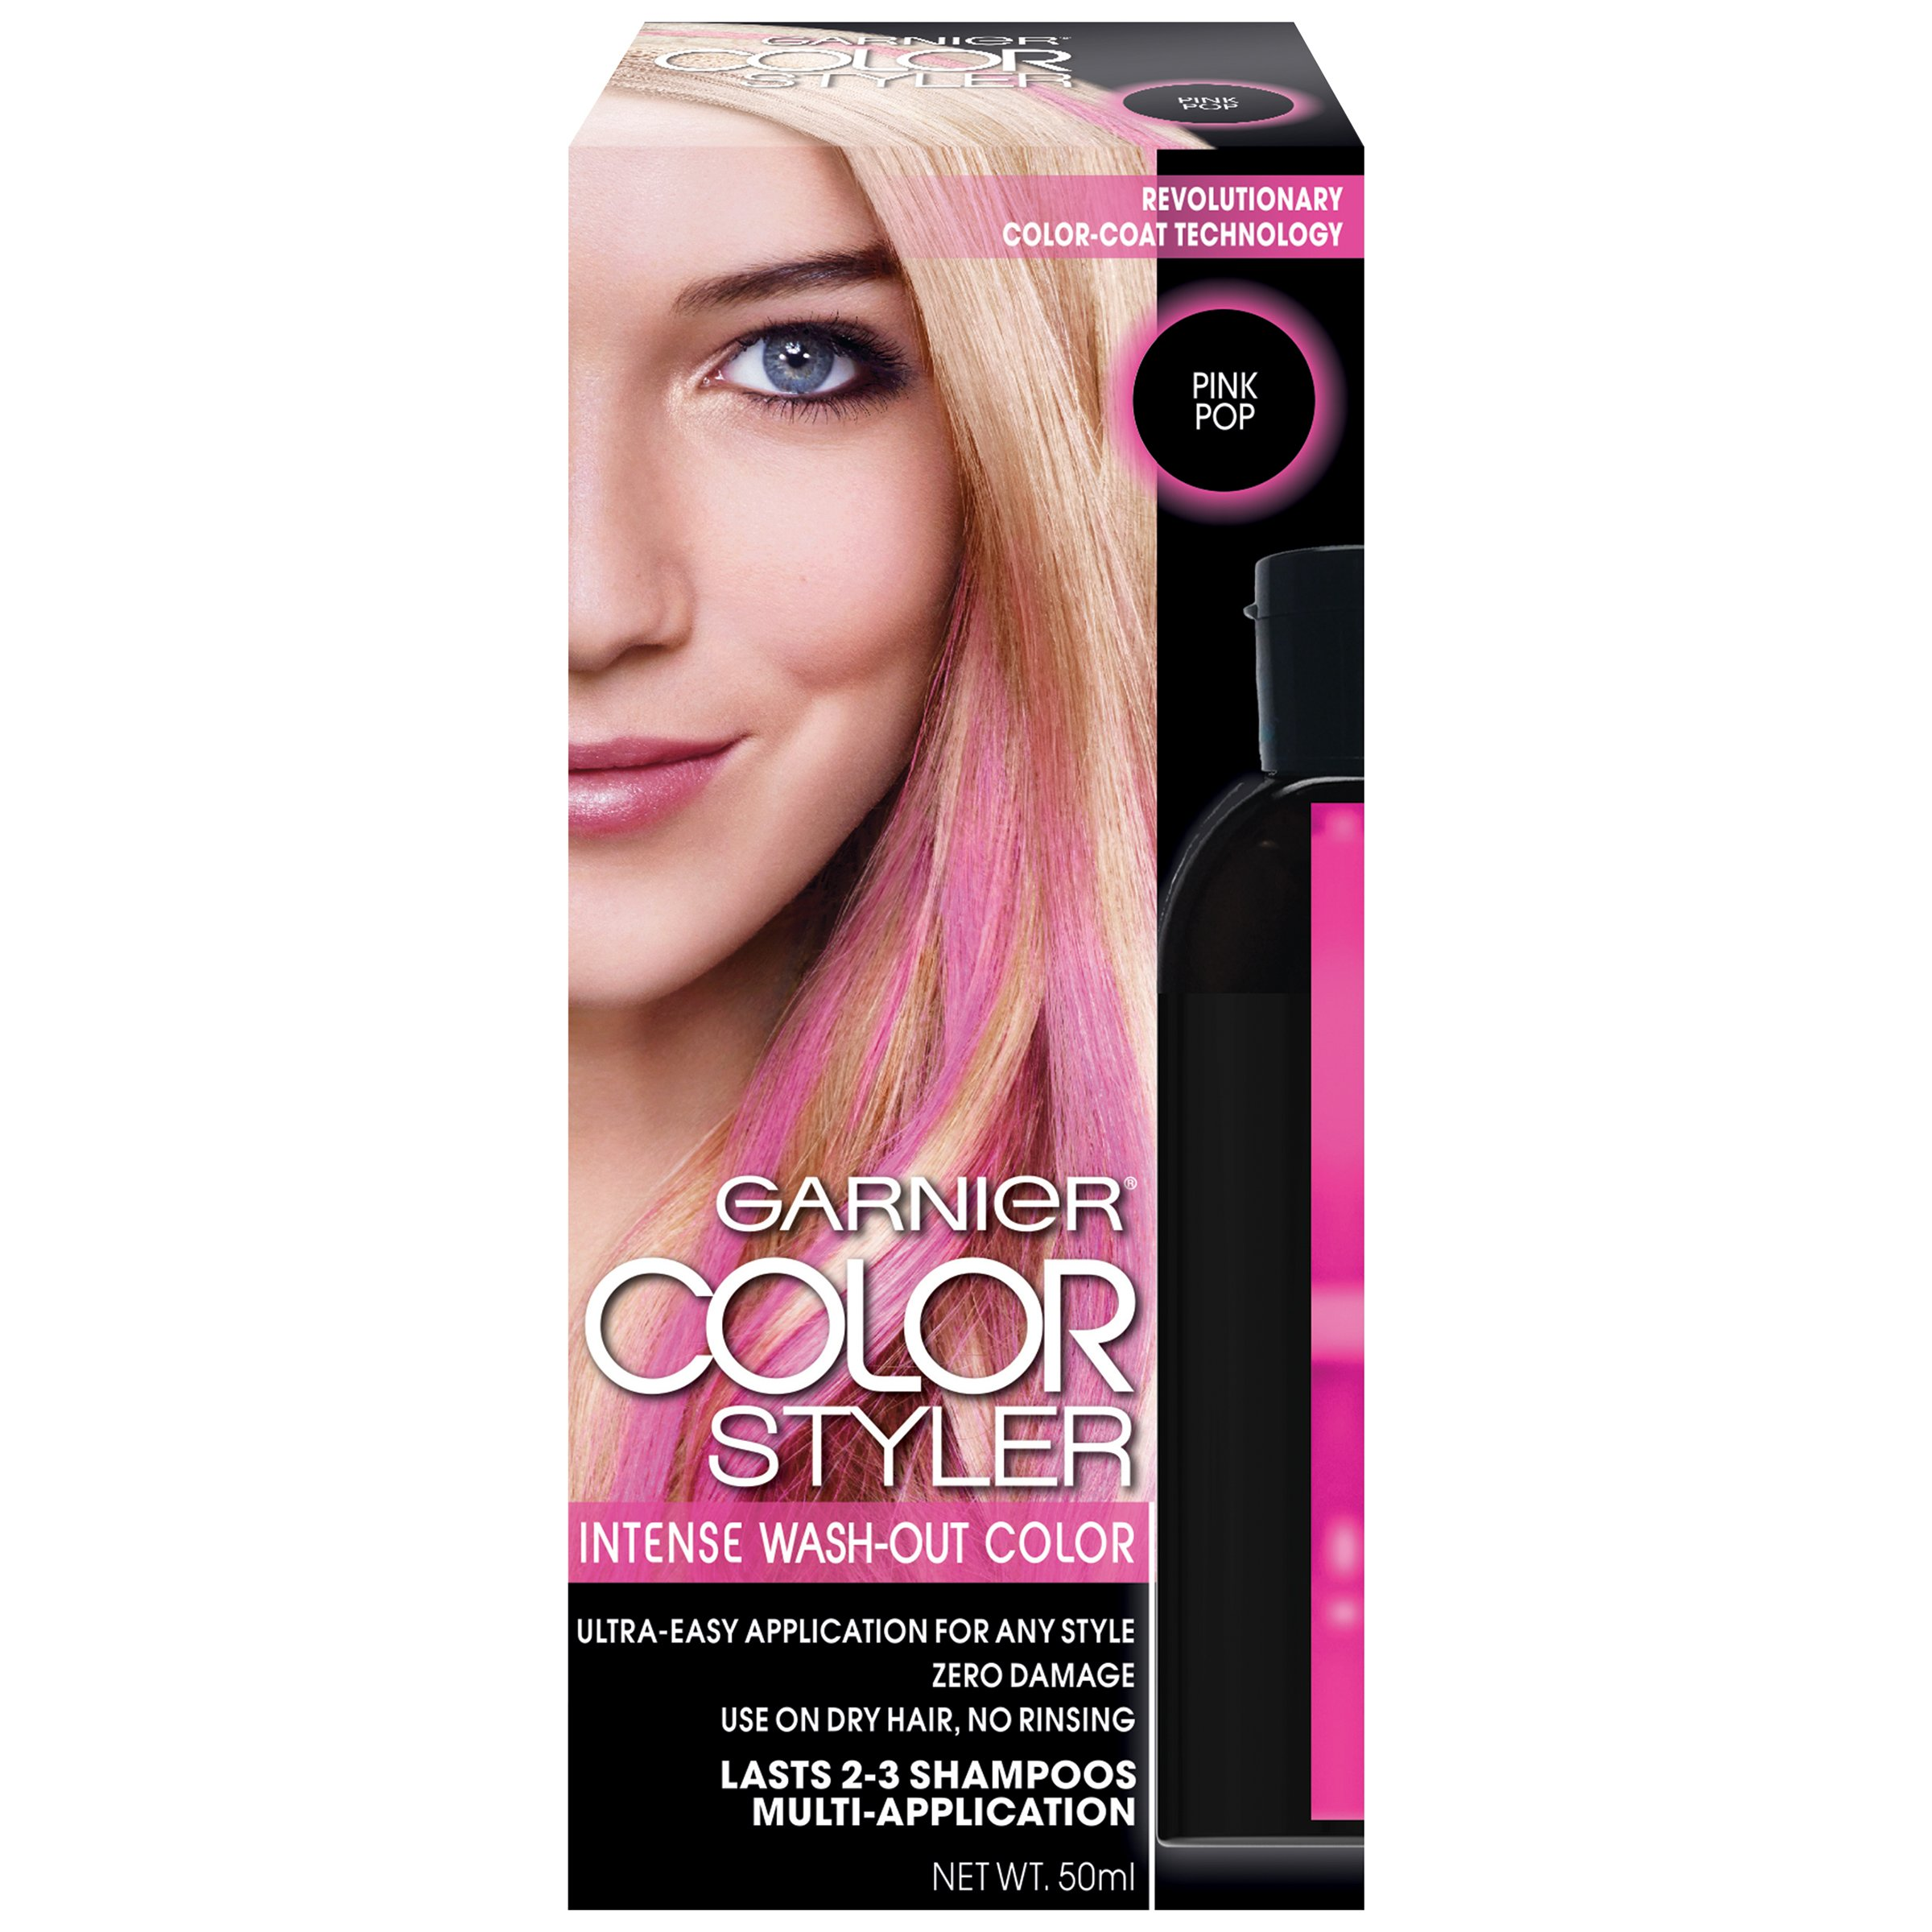 Free Garnier Color Styler Intense Wash Out Haircolor Pink Pop 1 Wallpaper